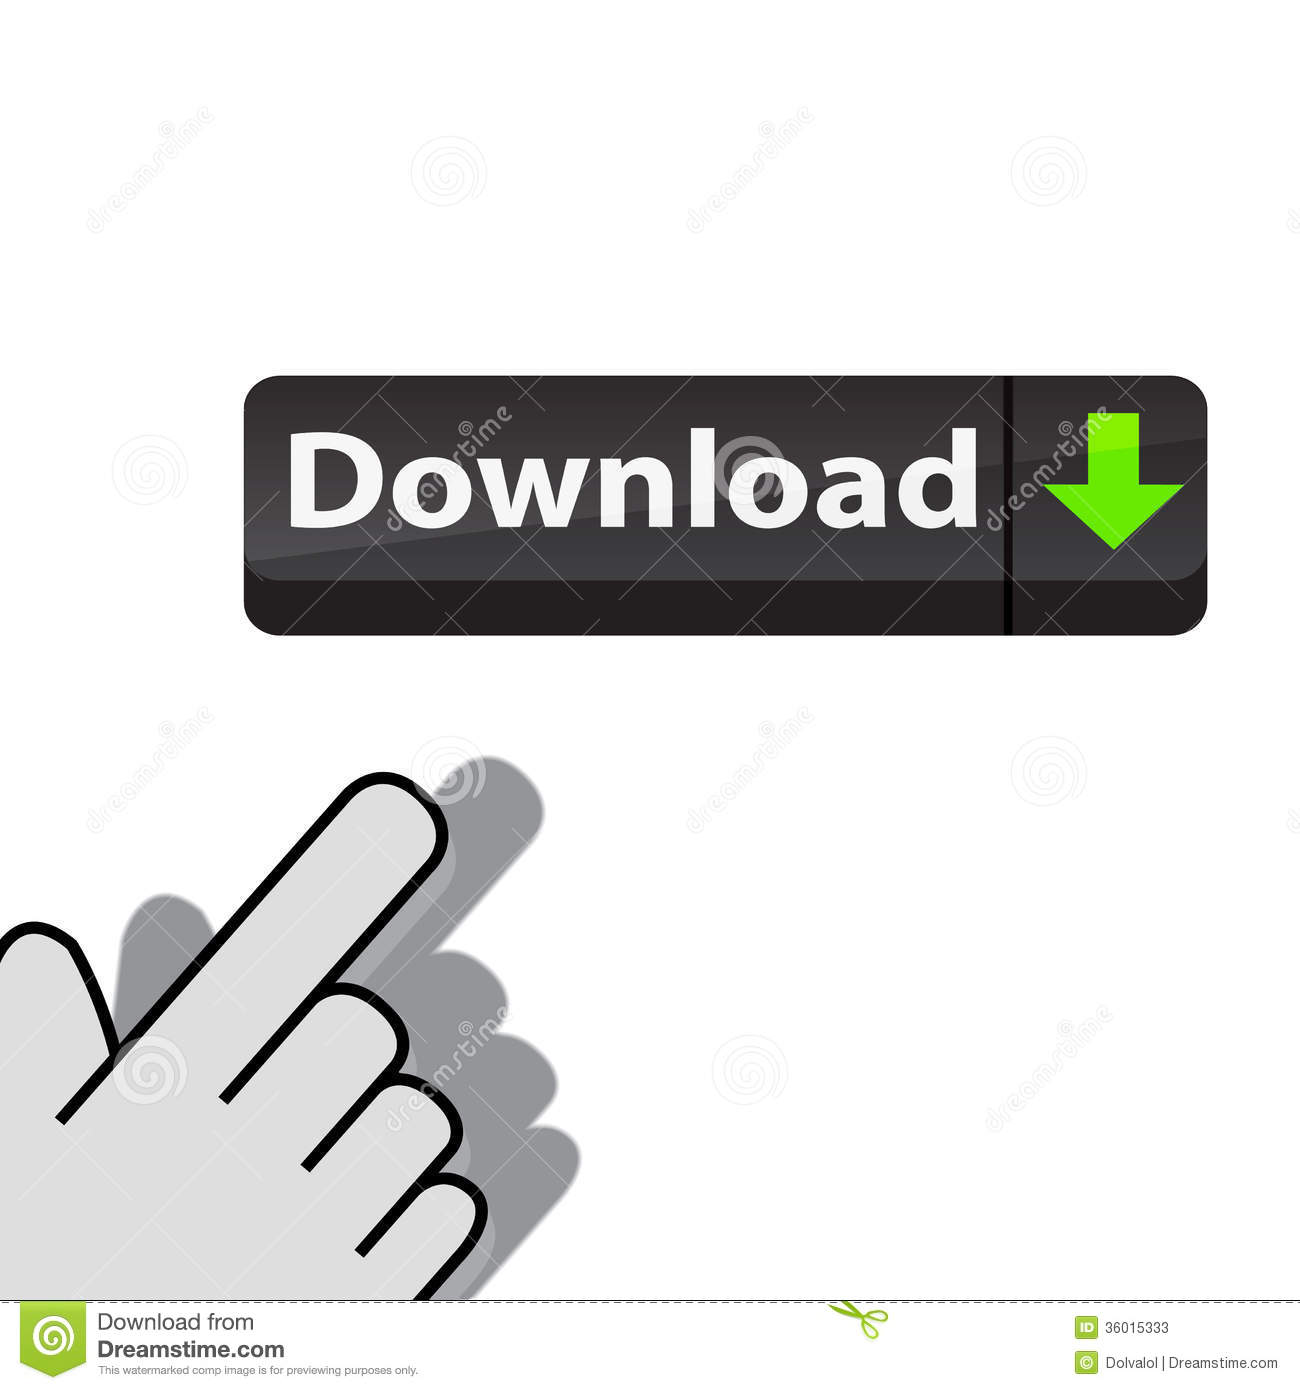 How to download a file when I click an HTML button - Quora